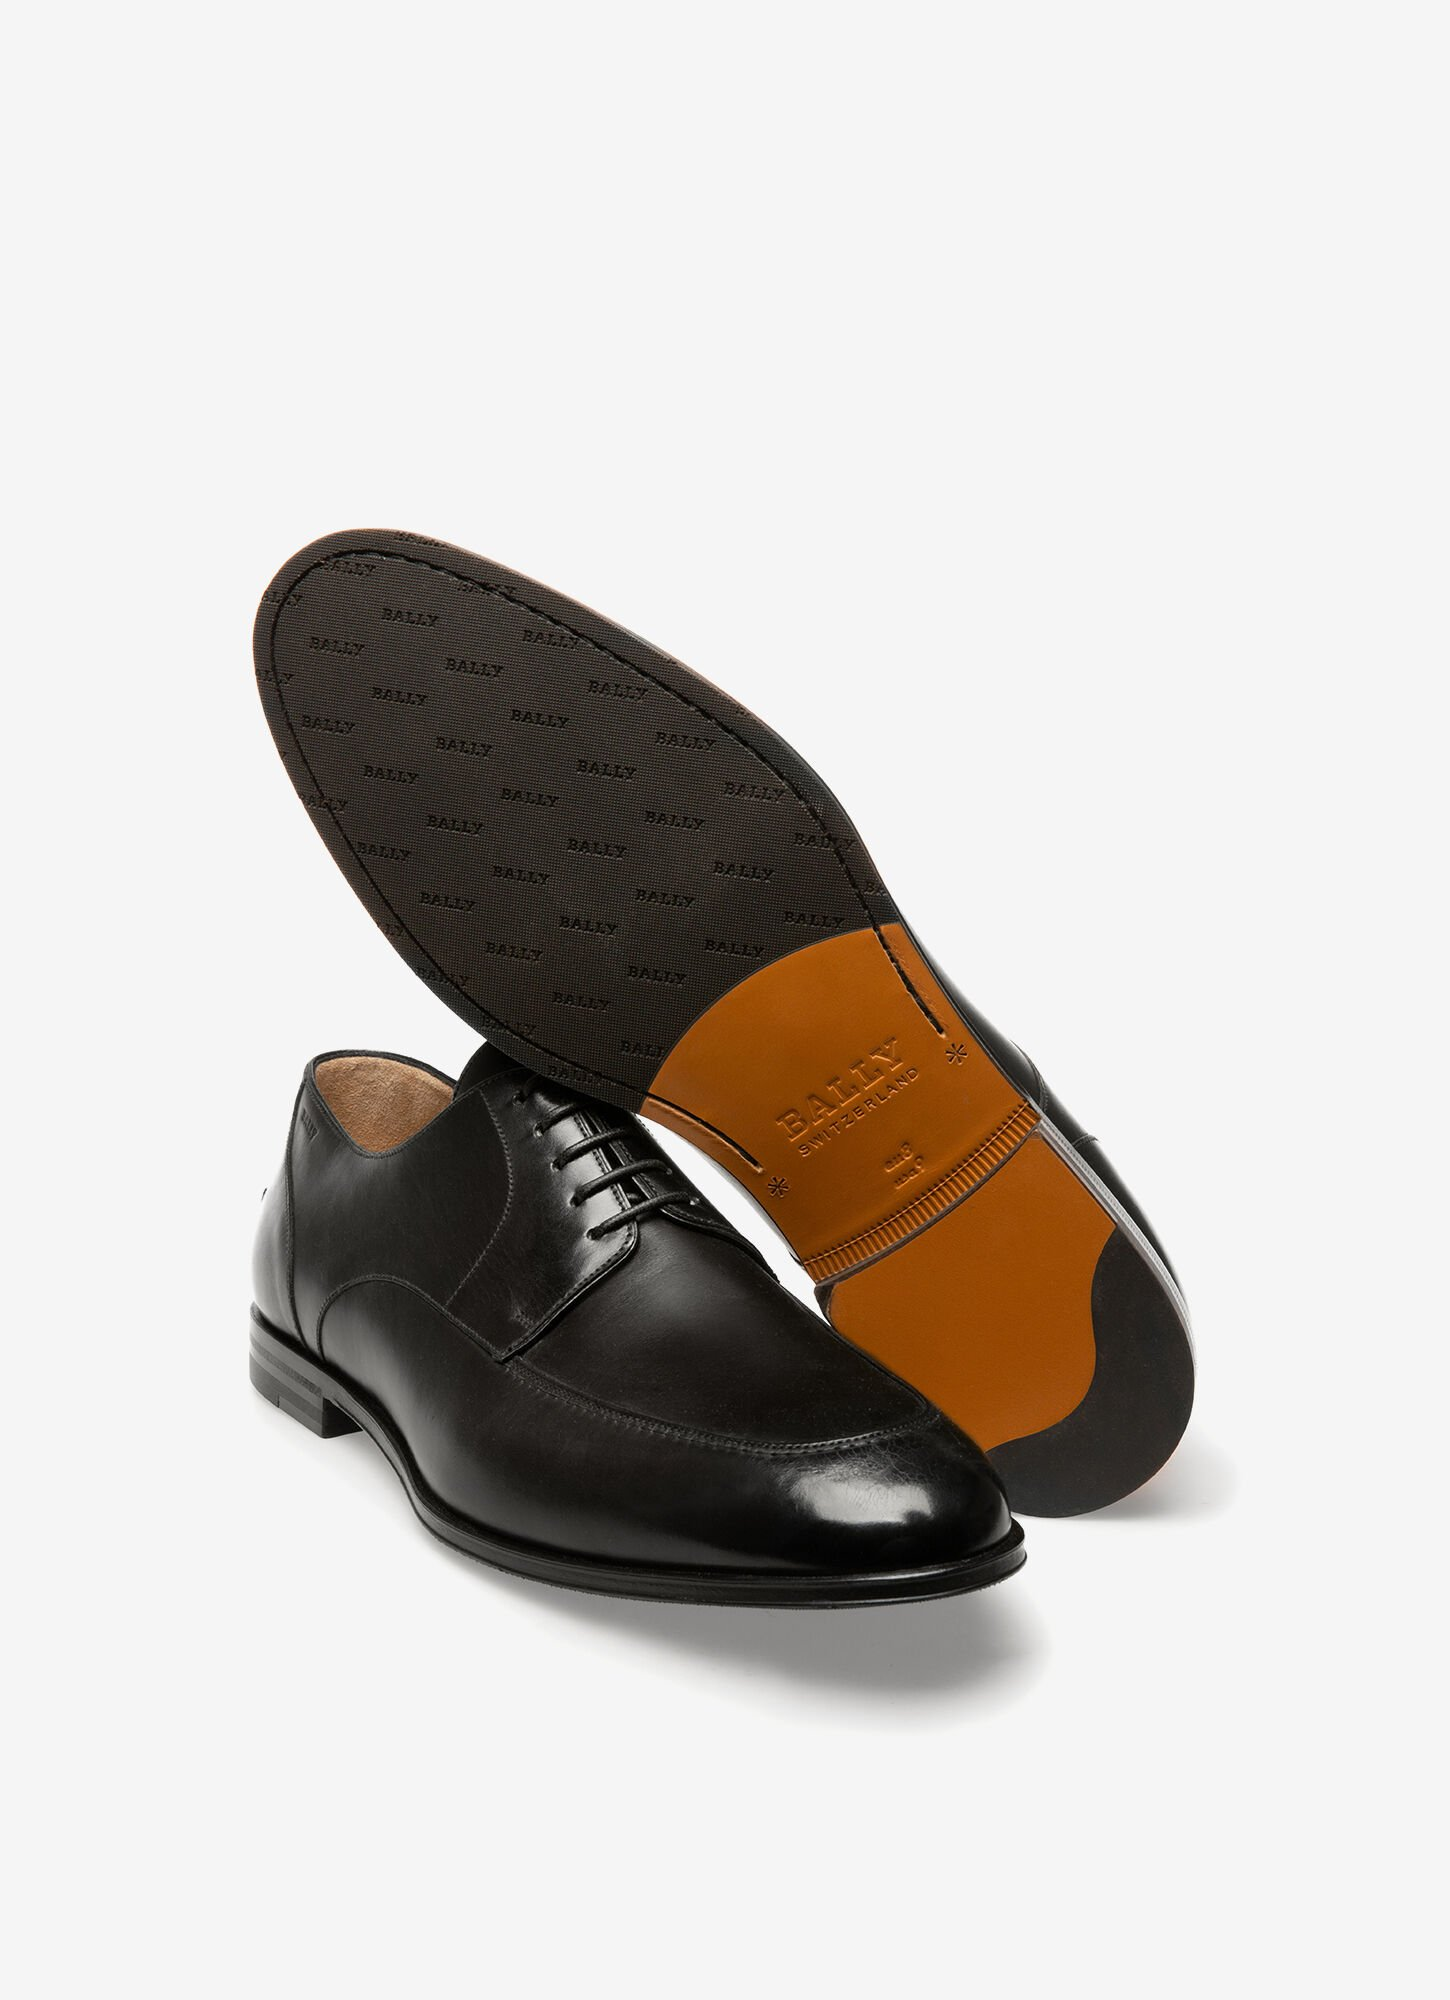 Wedmer  Mens Lace-Ups   Black Leather